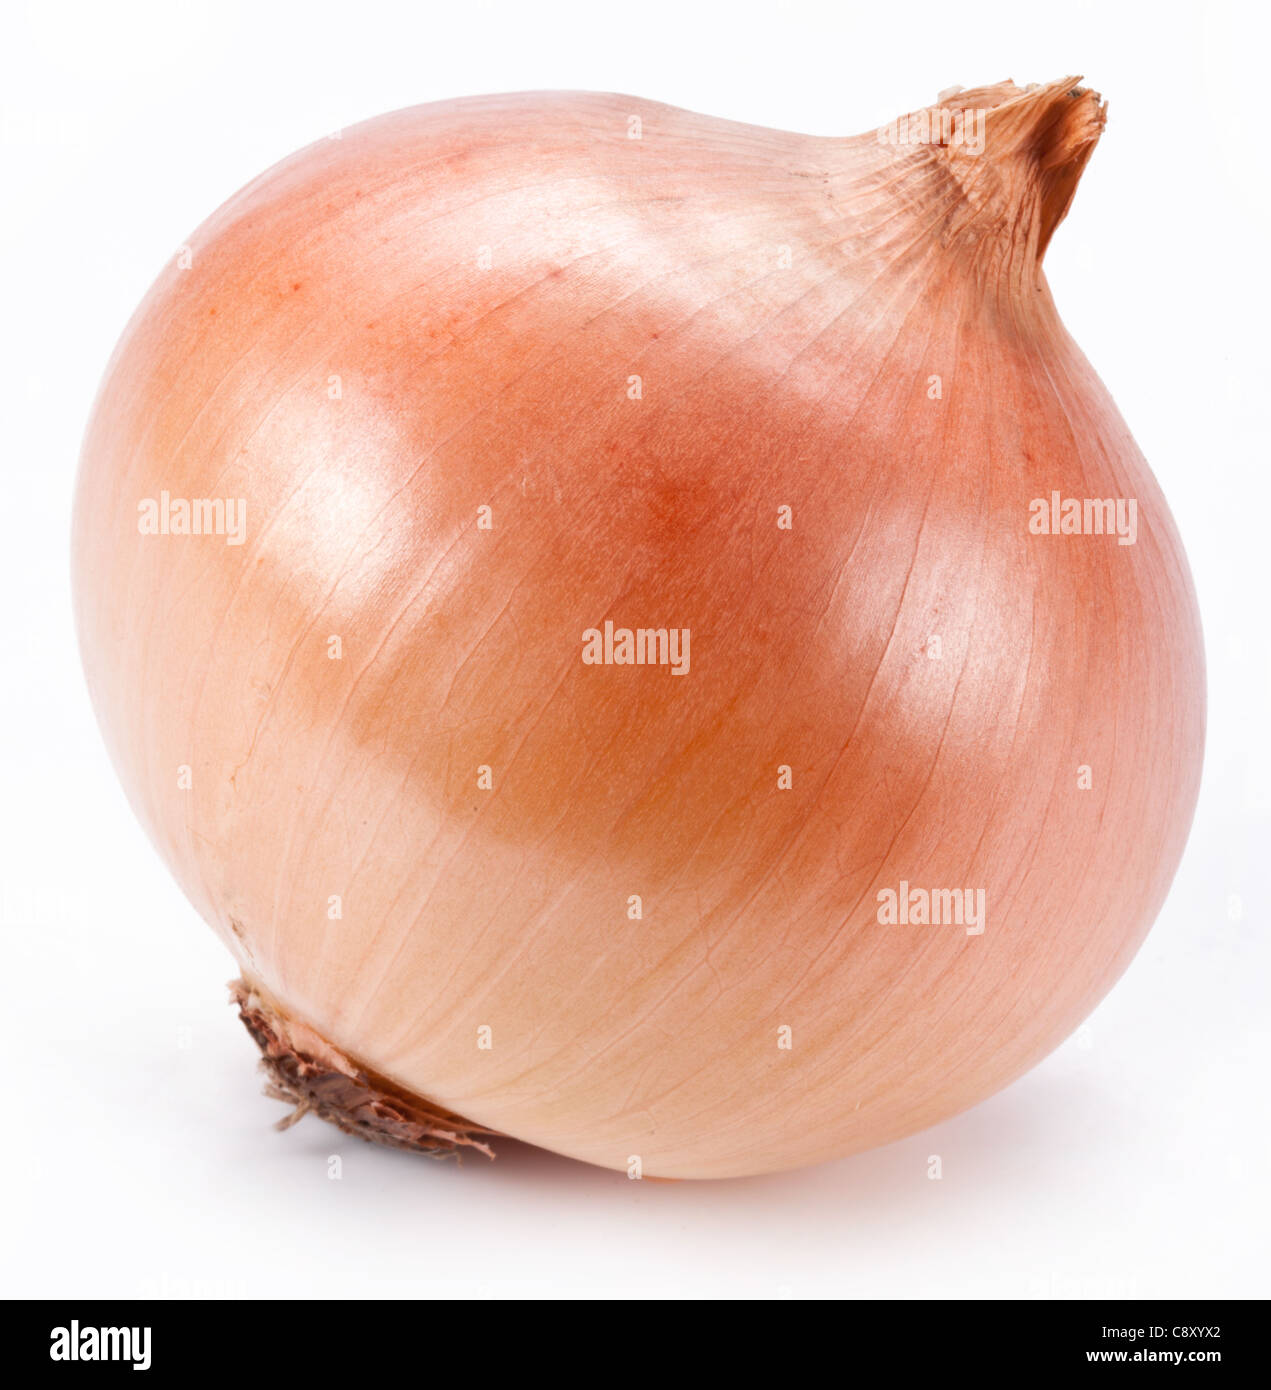 Onion on a white background - Stock Image